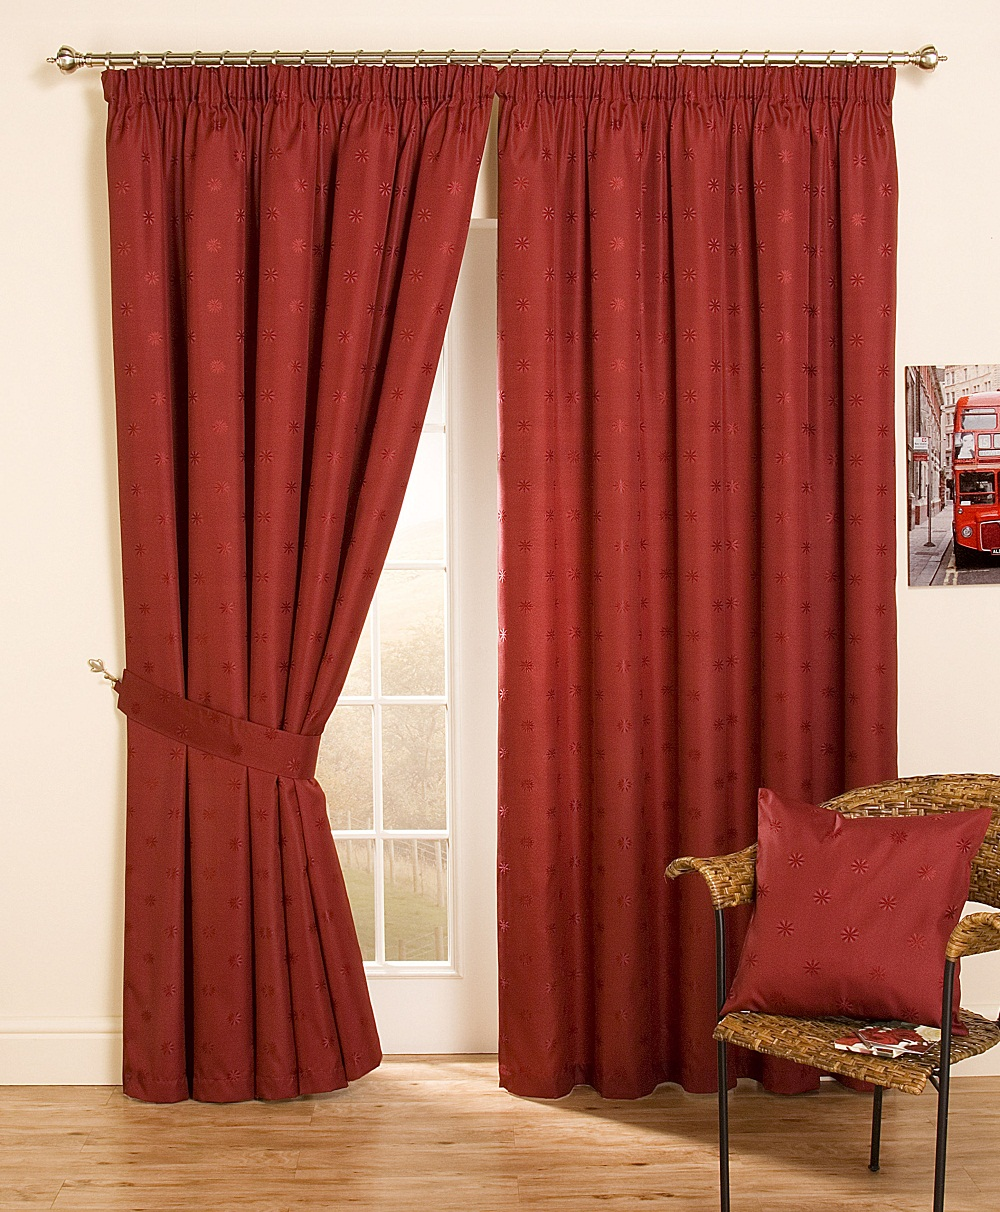 Elegant Image of: Color Curtains for Front Door thermal front door curtain